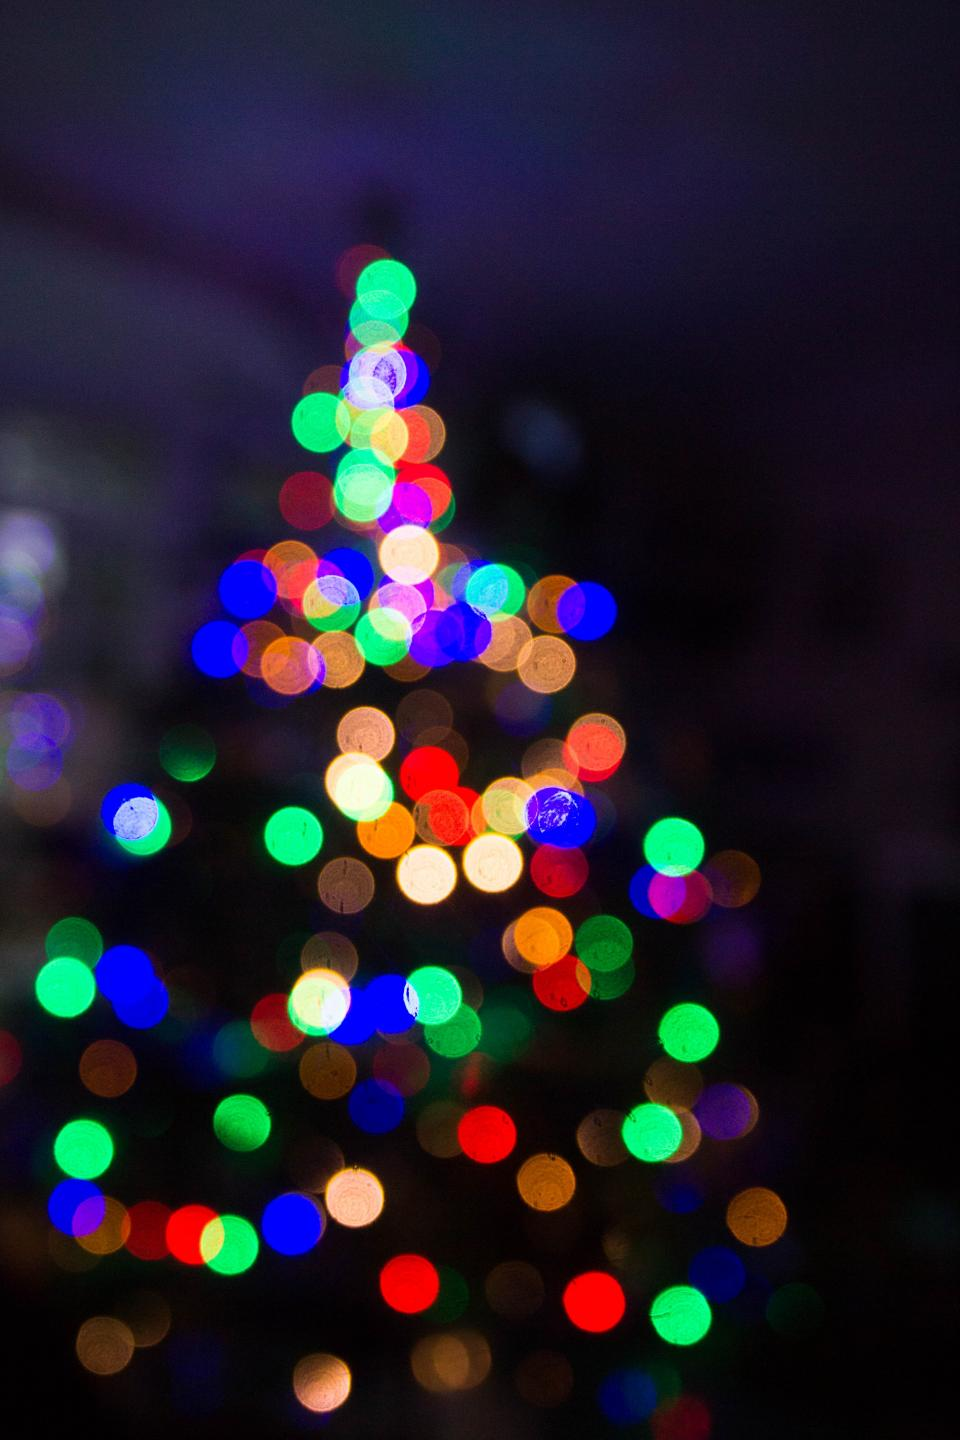 dark night christmas colorful lights lighting bokeh